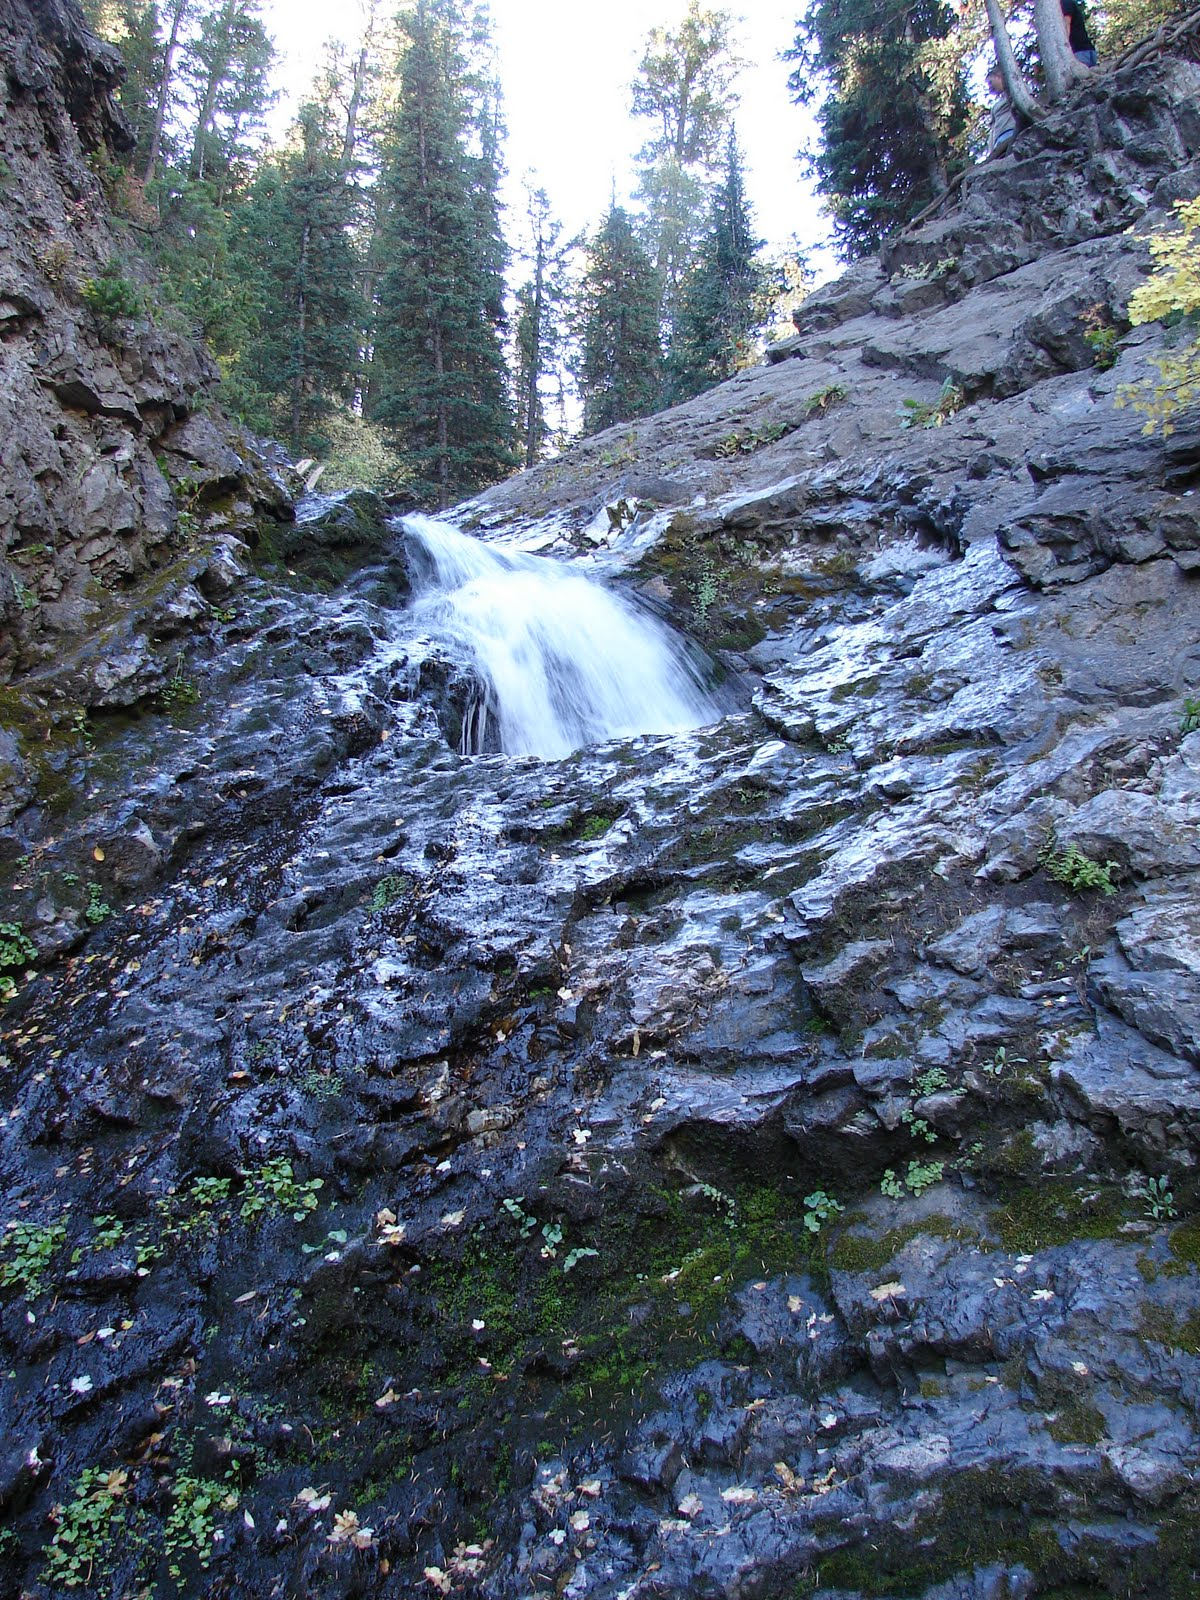 Donut Falls Images - Reverse Search